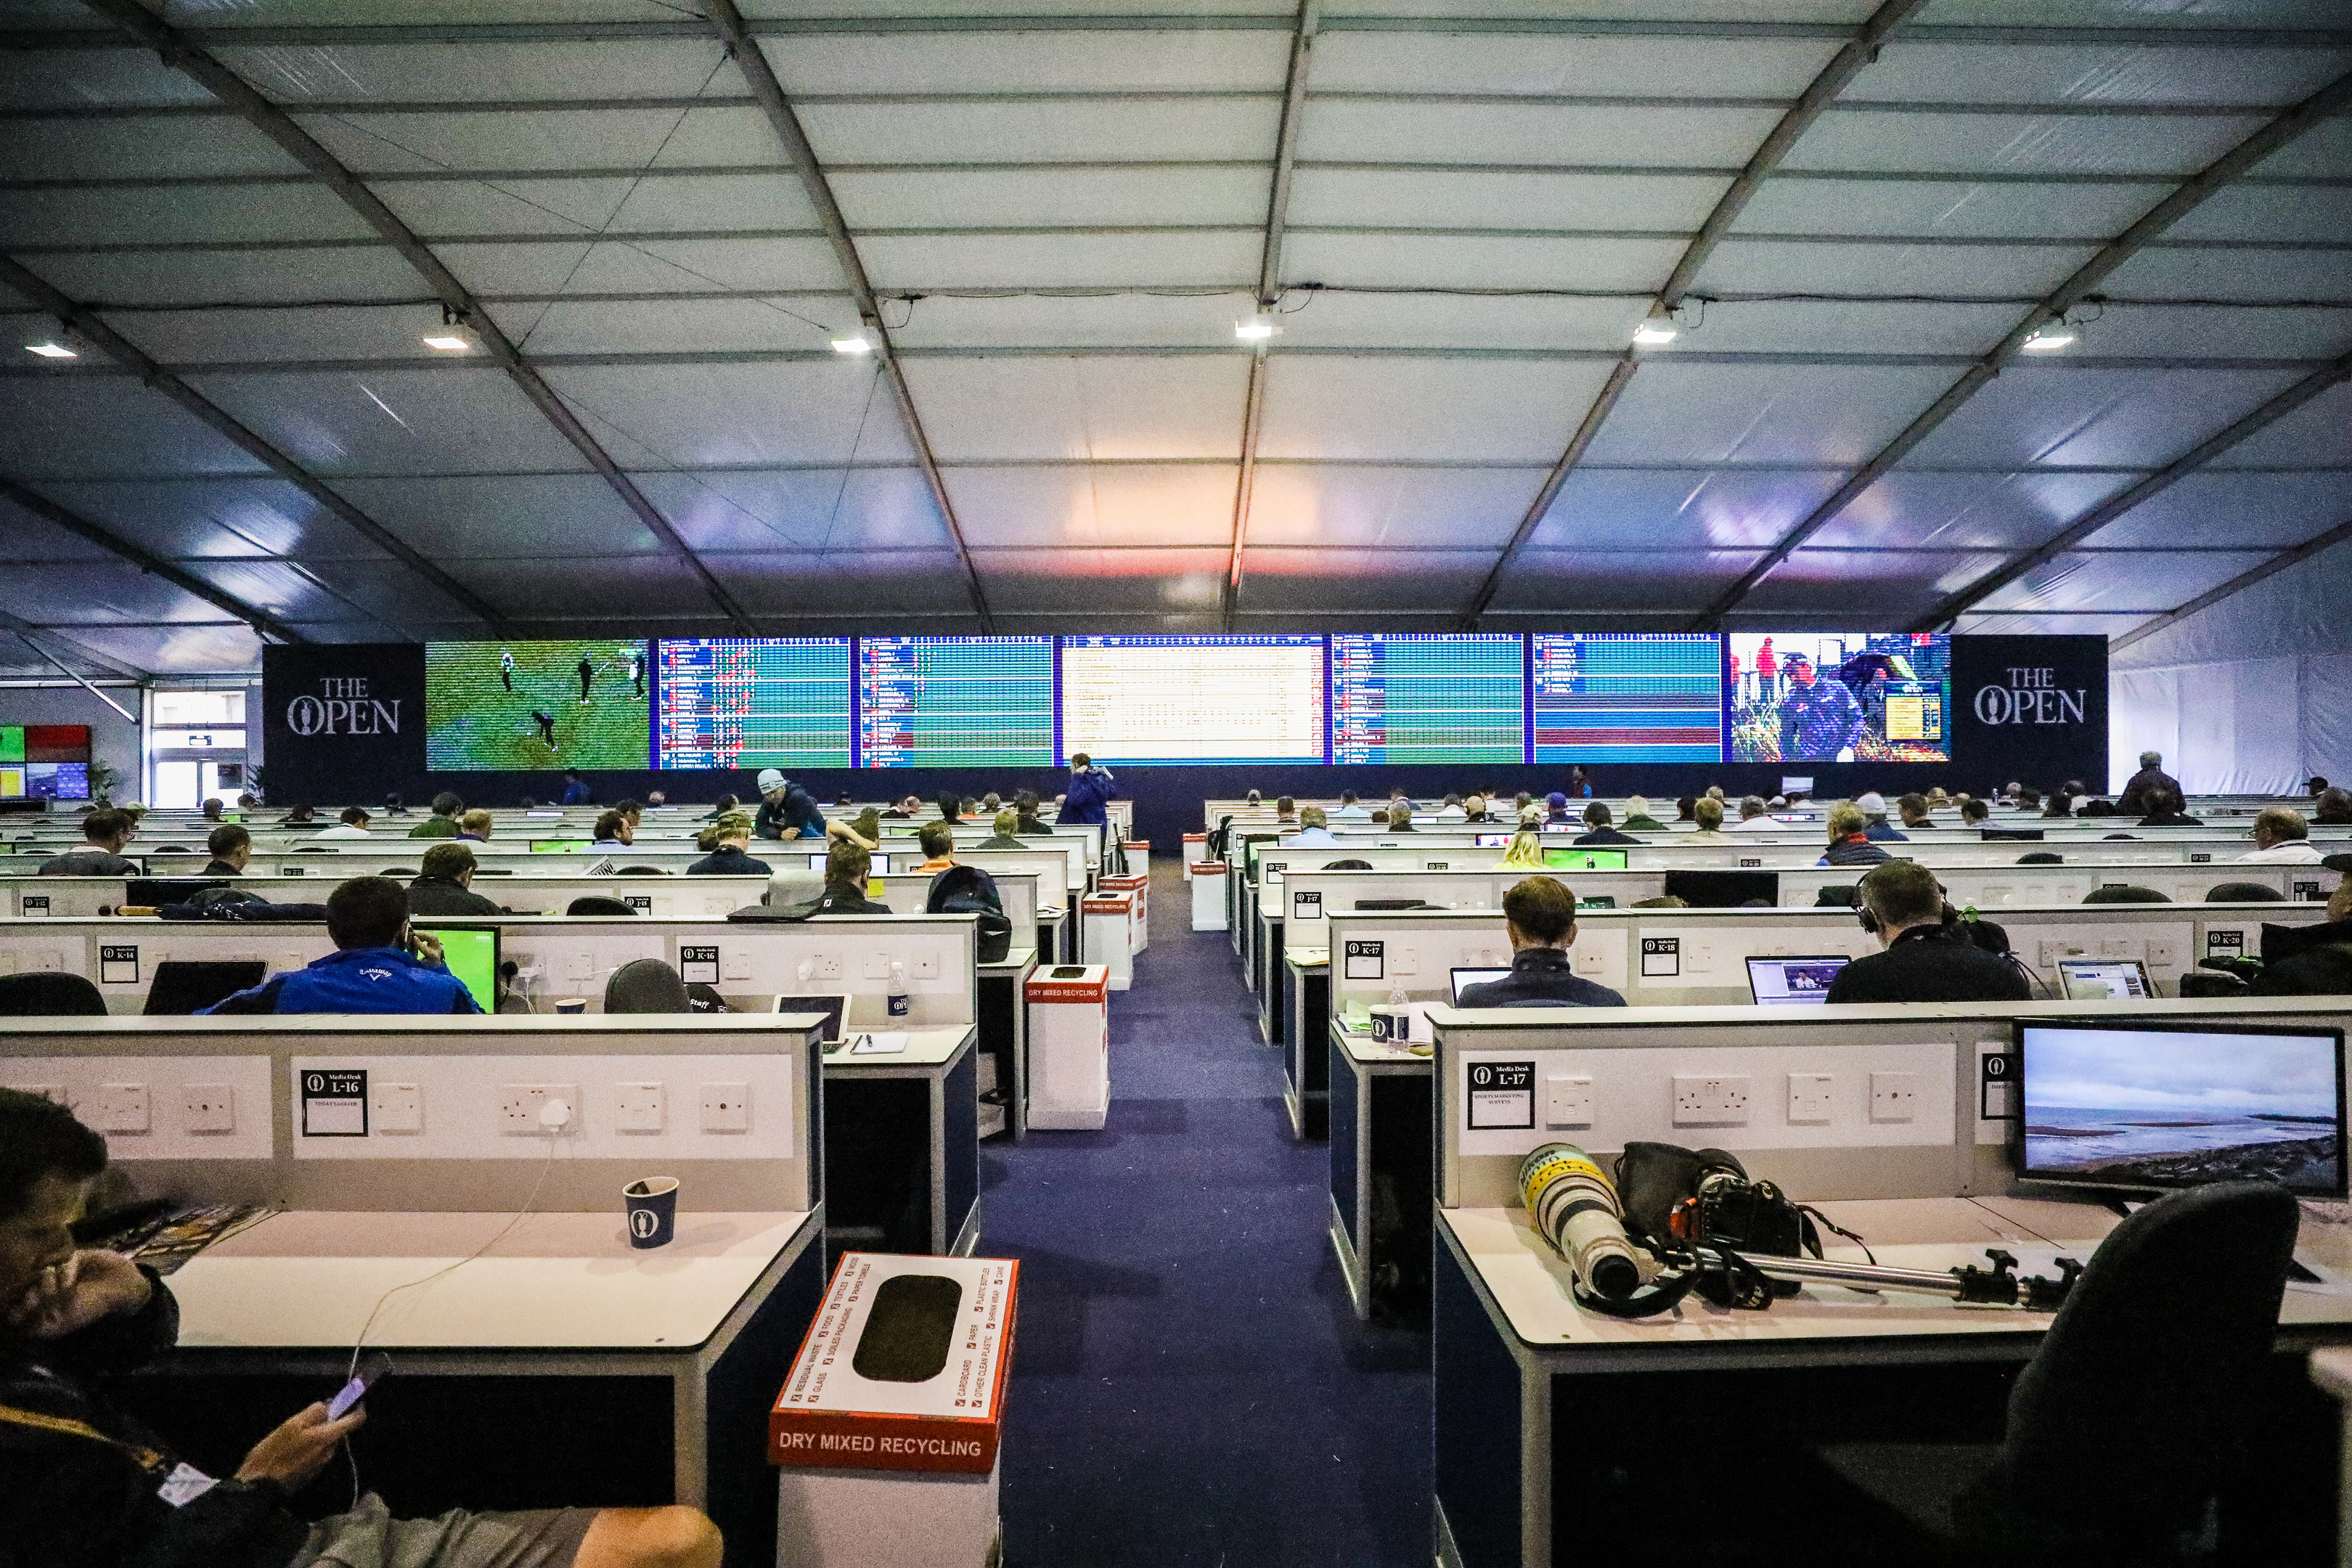 A busy media centre at the Open